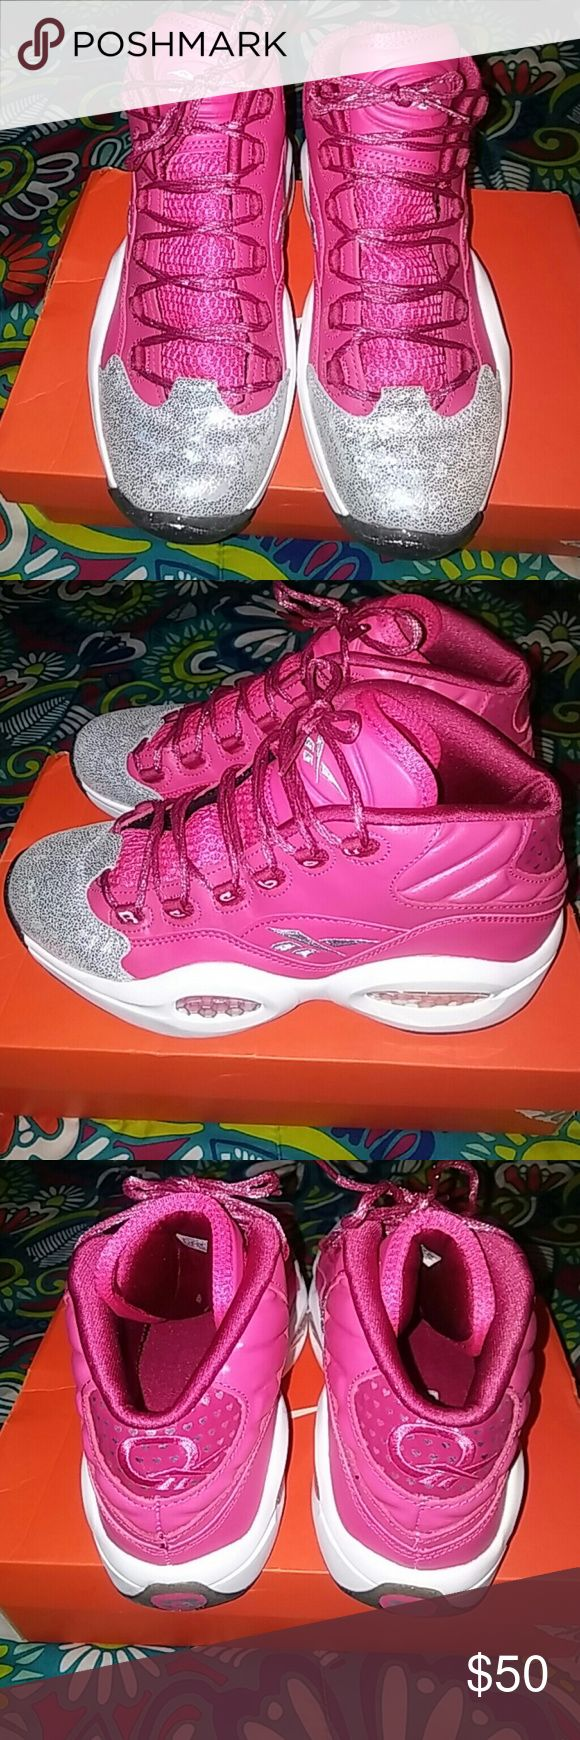 "New Reebok Allen Iversons New worn once for a very short period of time. Valentine's love Allen Iverson sneakers Rose colored pink a very pretty color, with the tip of the toes iridescent and glitter soles. What more could a girl ask for in a guy sneaker lil. Very girly so fellas if ur looking for a girly version of a man sneaker well here it is. Opened to offer but dont low ball me. Happy Poshing. Plz note these are a 7 in ""MEN"" Reebok Shoes Athletic Shoes"